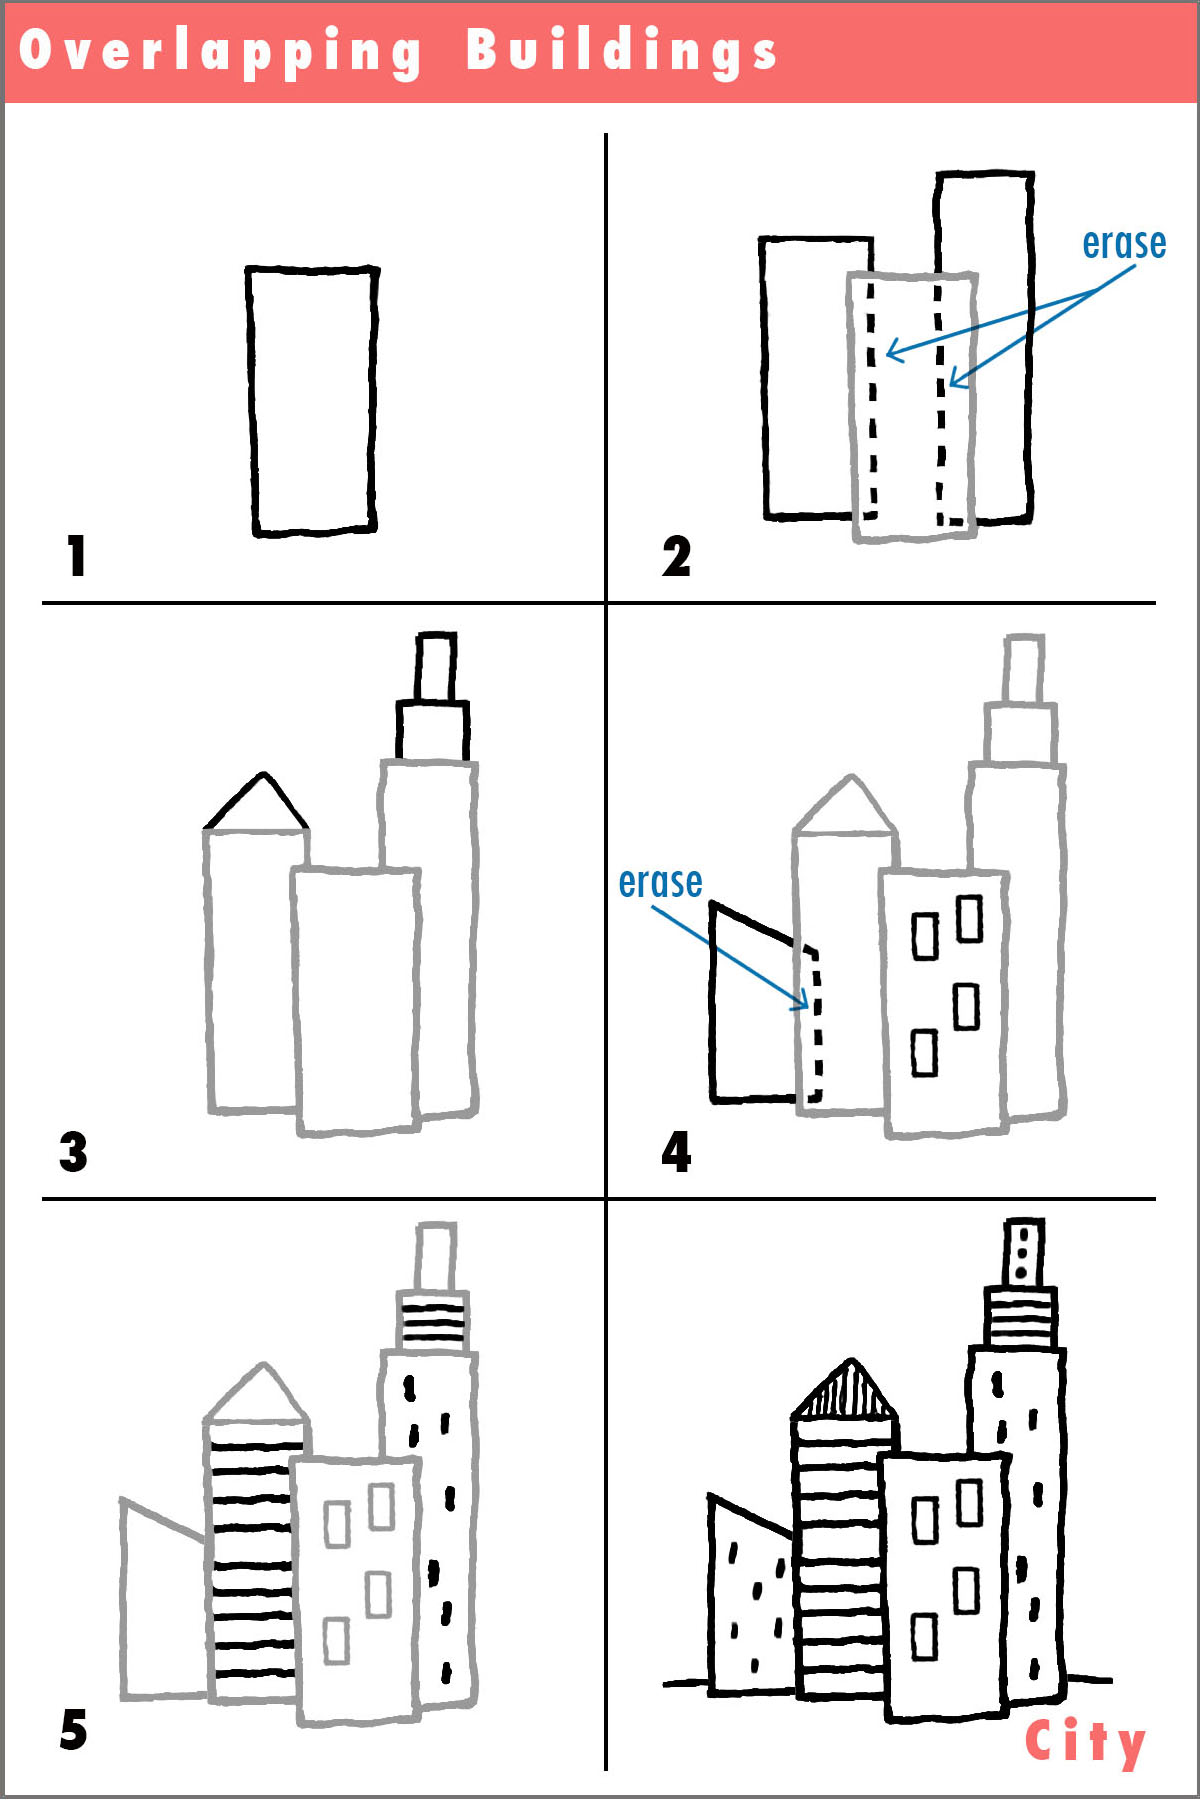 Draw drawing simple city overlapping pencil fun activity Step by step to build a house